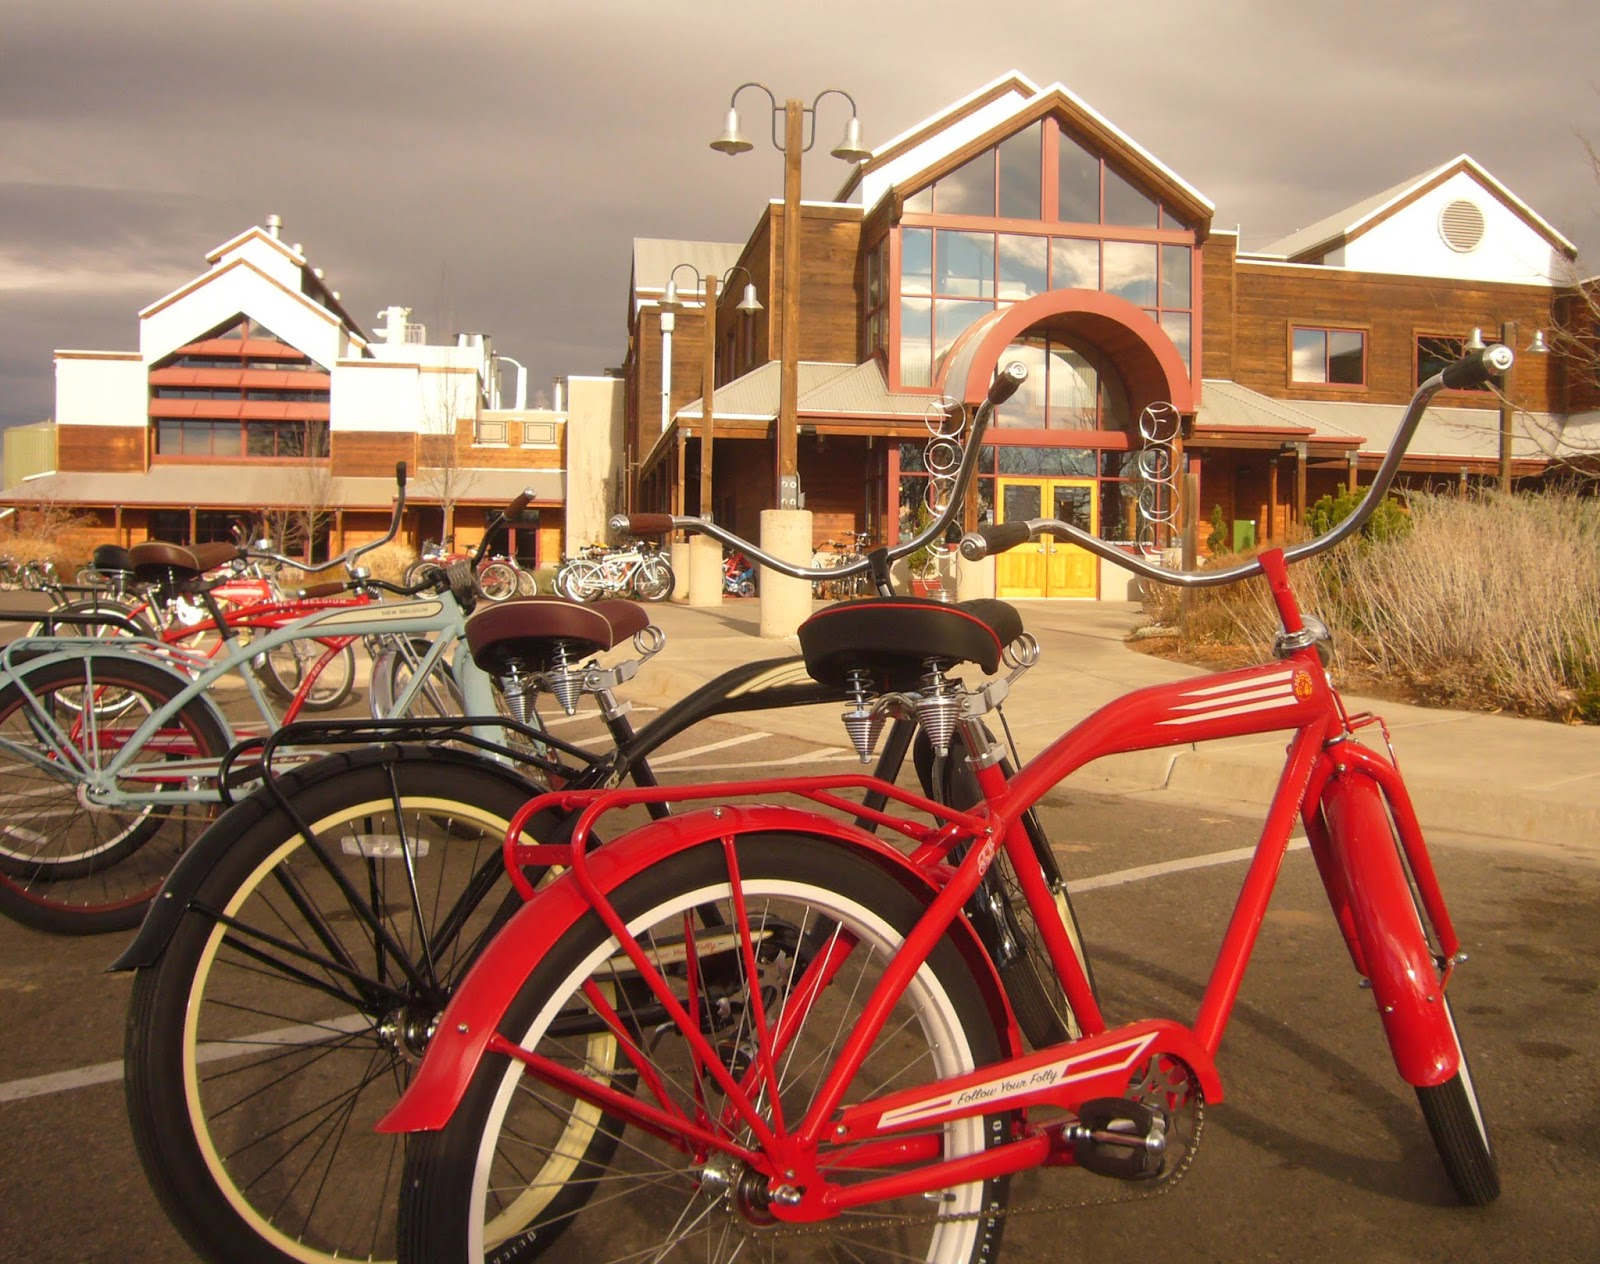 At New Belgium Brewing, everything is designed around environmental protection and sustainability